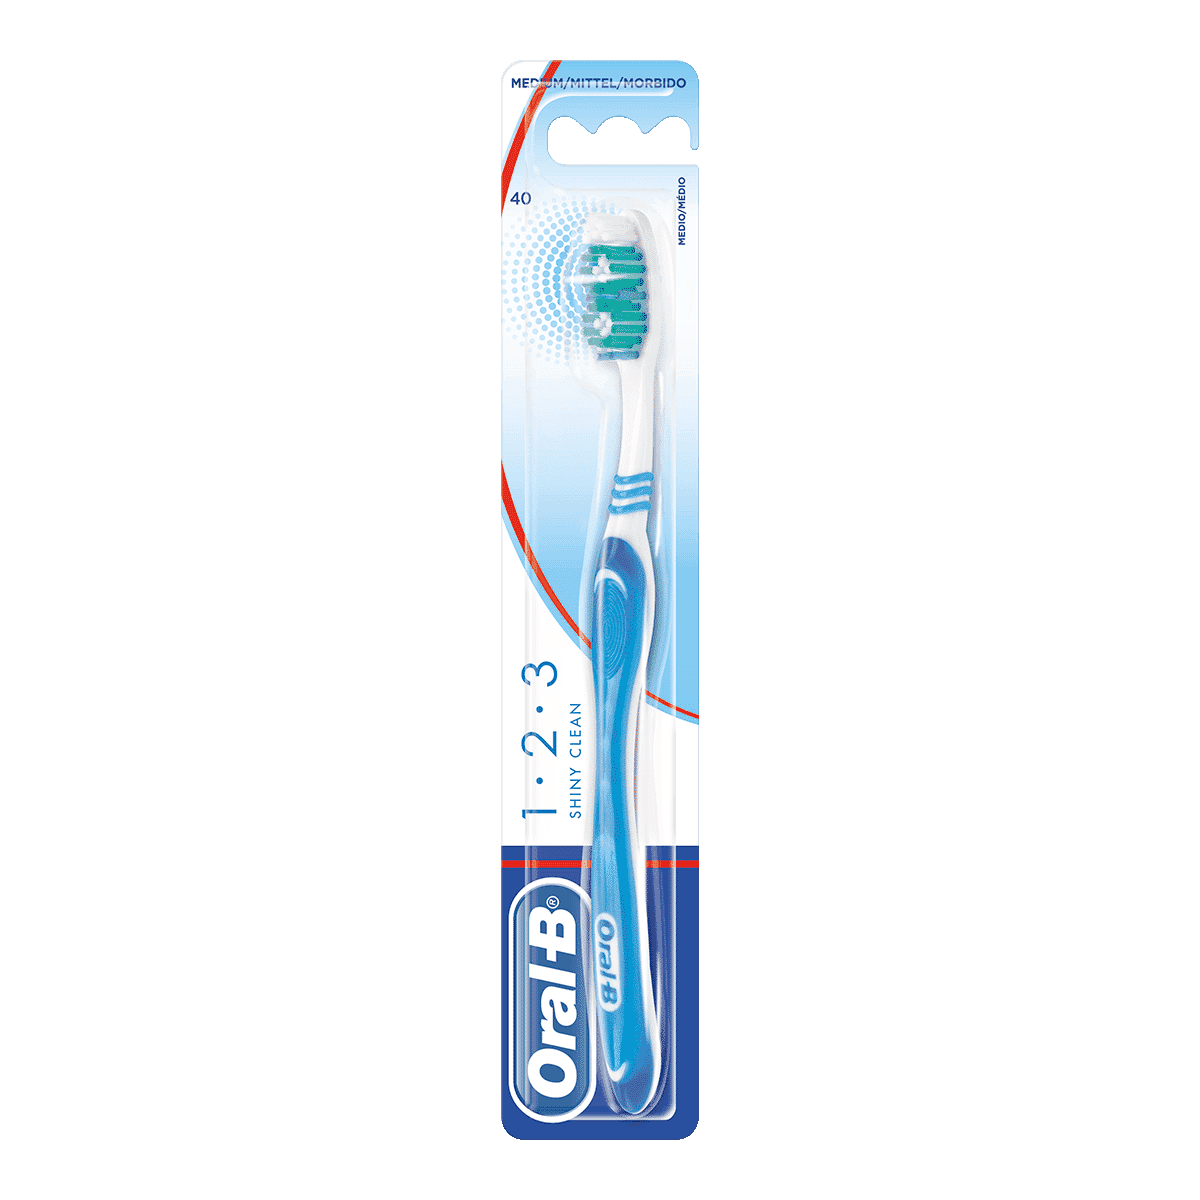 Oral-B 123 Shiny Clean Toothbrush